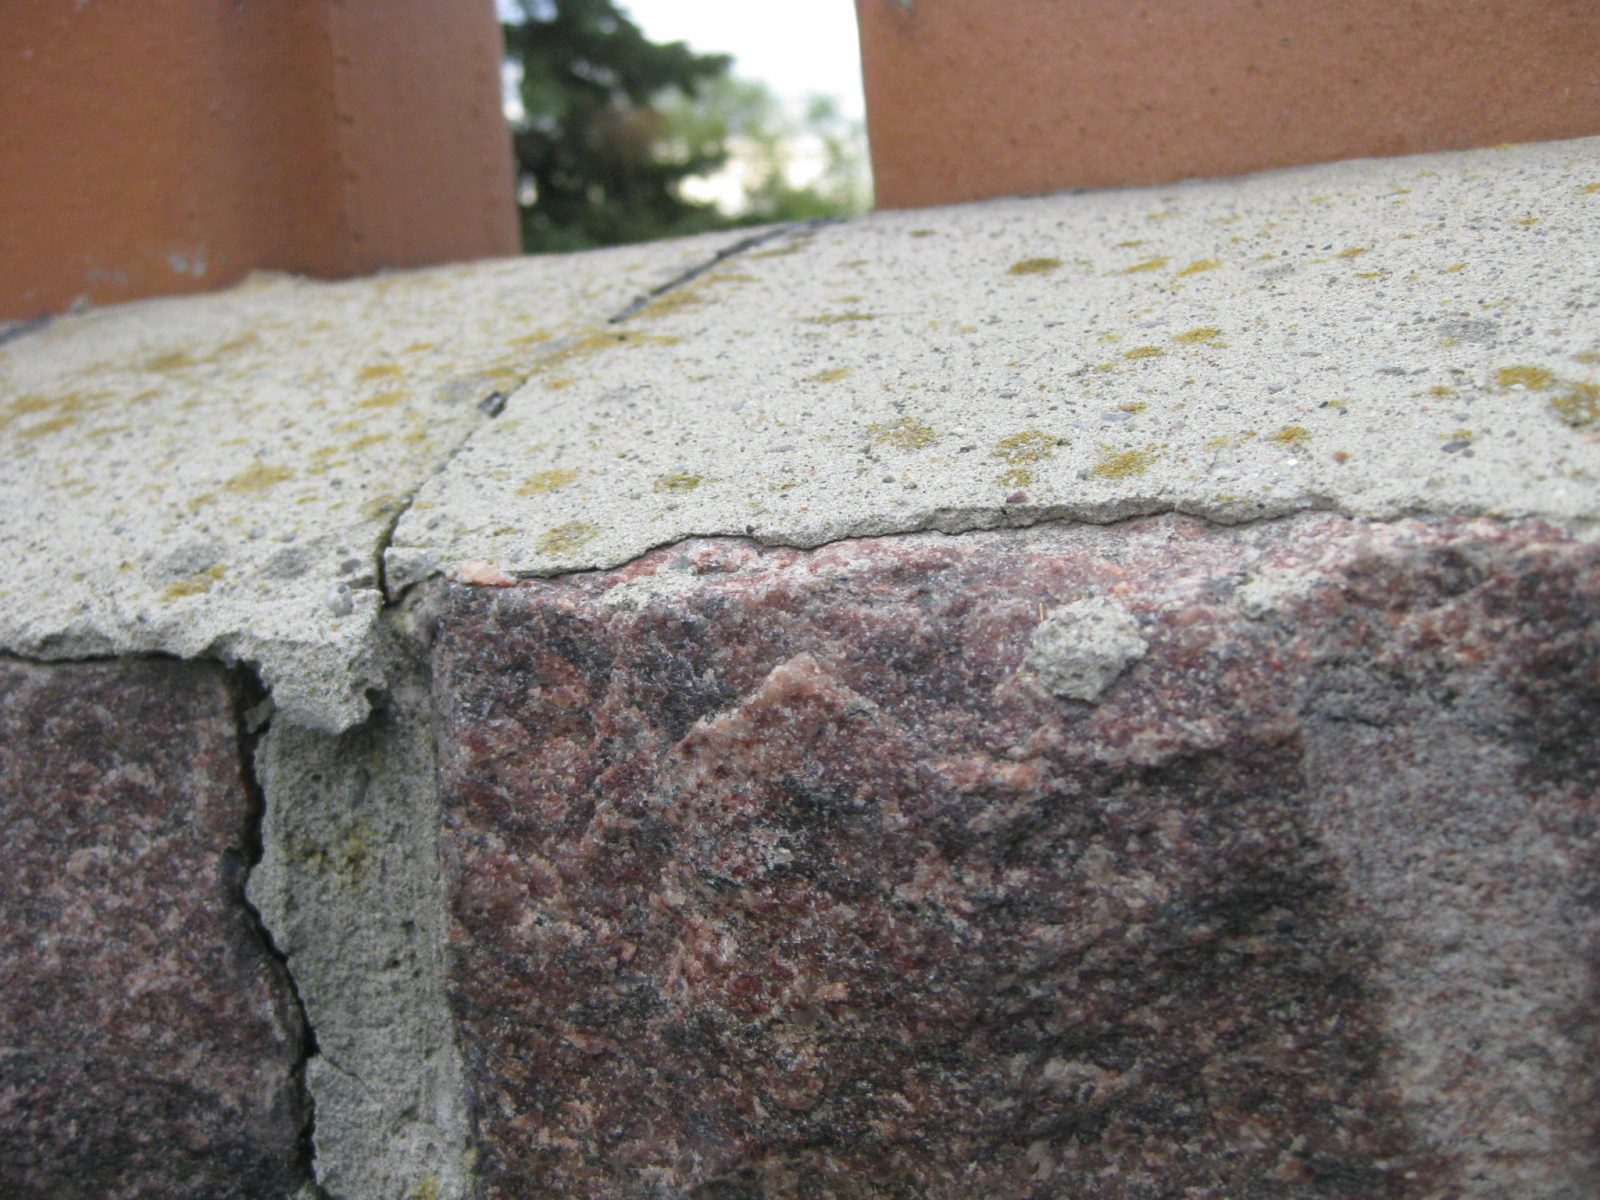 Mortar on chimney cap has cracked.  Water will enter chimney and cause further damage